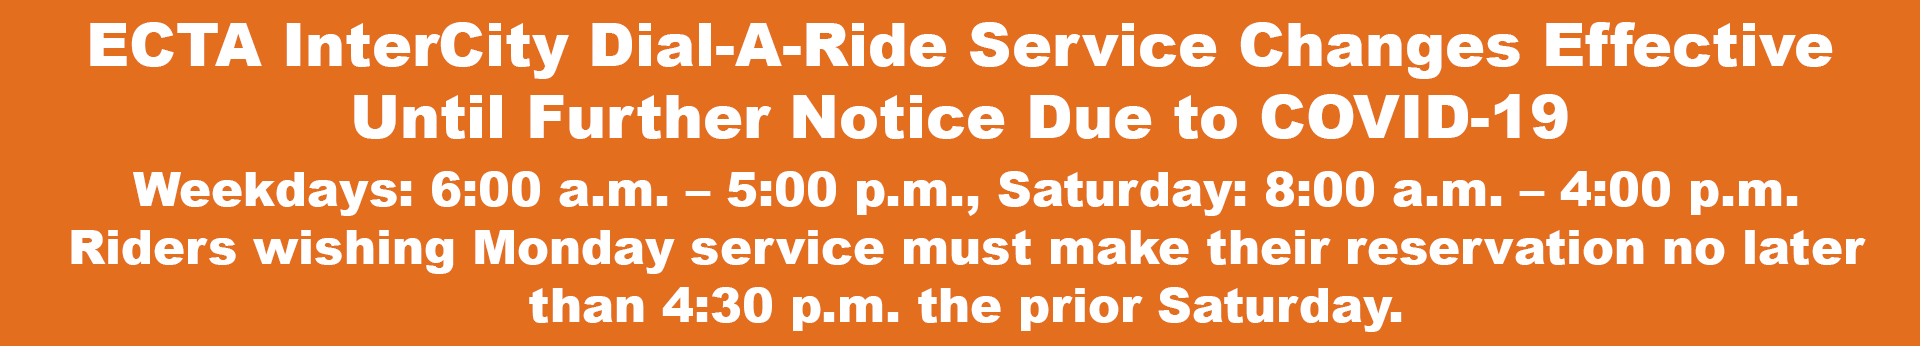 ECTA Service Changes Until Further Notice Due to COVID-19 Weekdays: 6:00 a.m. – 5:00 p.m., Saturday: 8:00 a.m. – 4:00 p.m. No Sunday Service, riders wishing Monday service must make their reservation no later than 4:30 p.m. the prior Saturday.